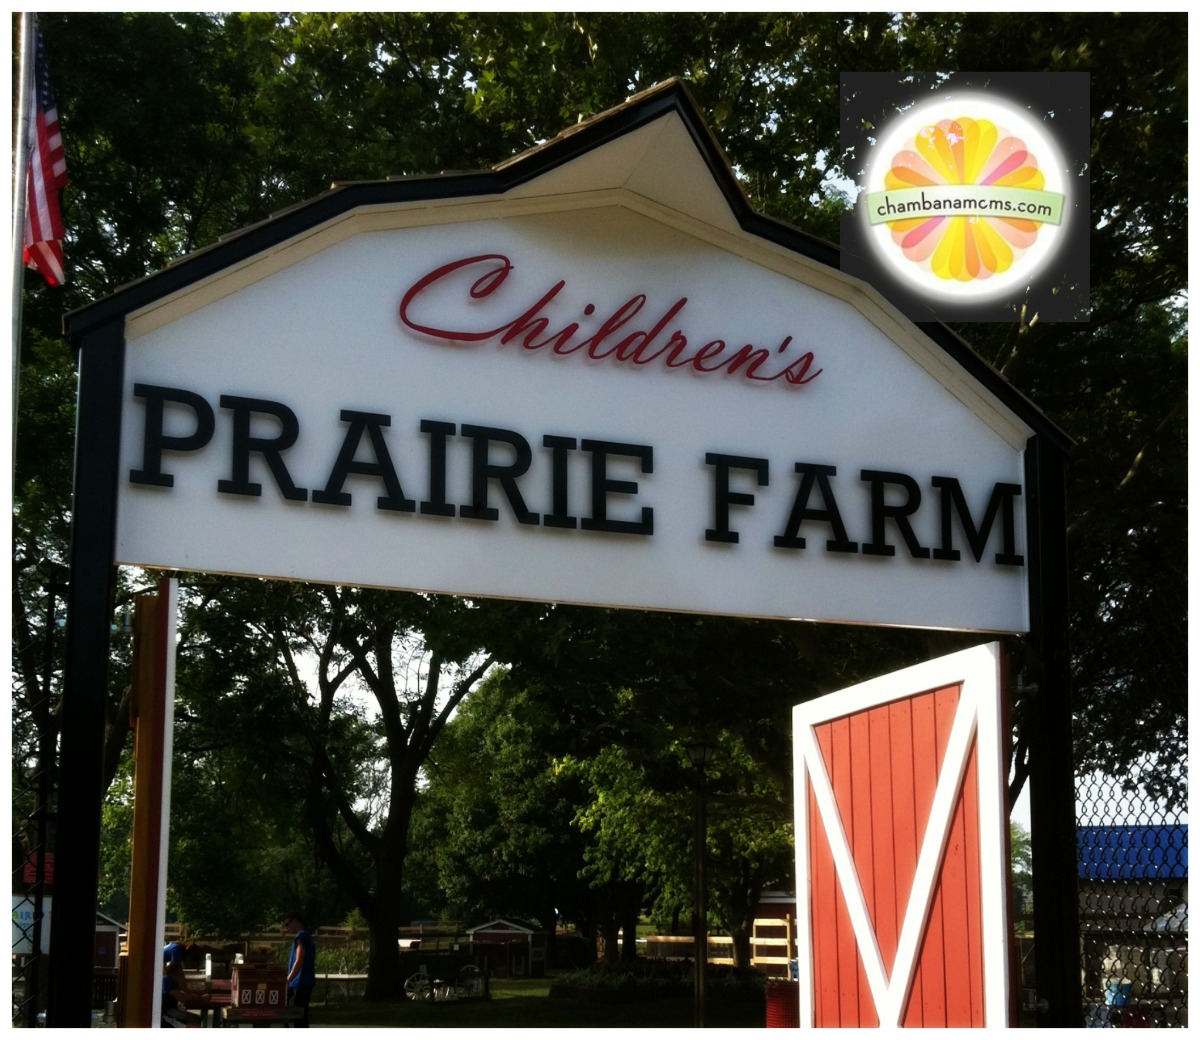 prairie farm guys {/literal}our butte seed potatoes are highest in vitamin c and protein great baked, mashed, or fried our favorite russet rarely available elsewhere one of our best sellers.